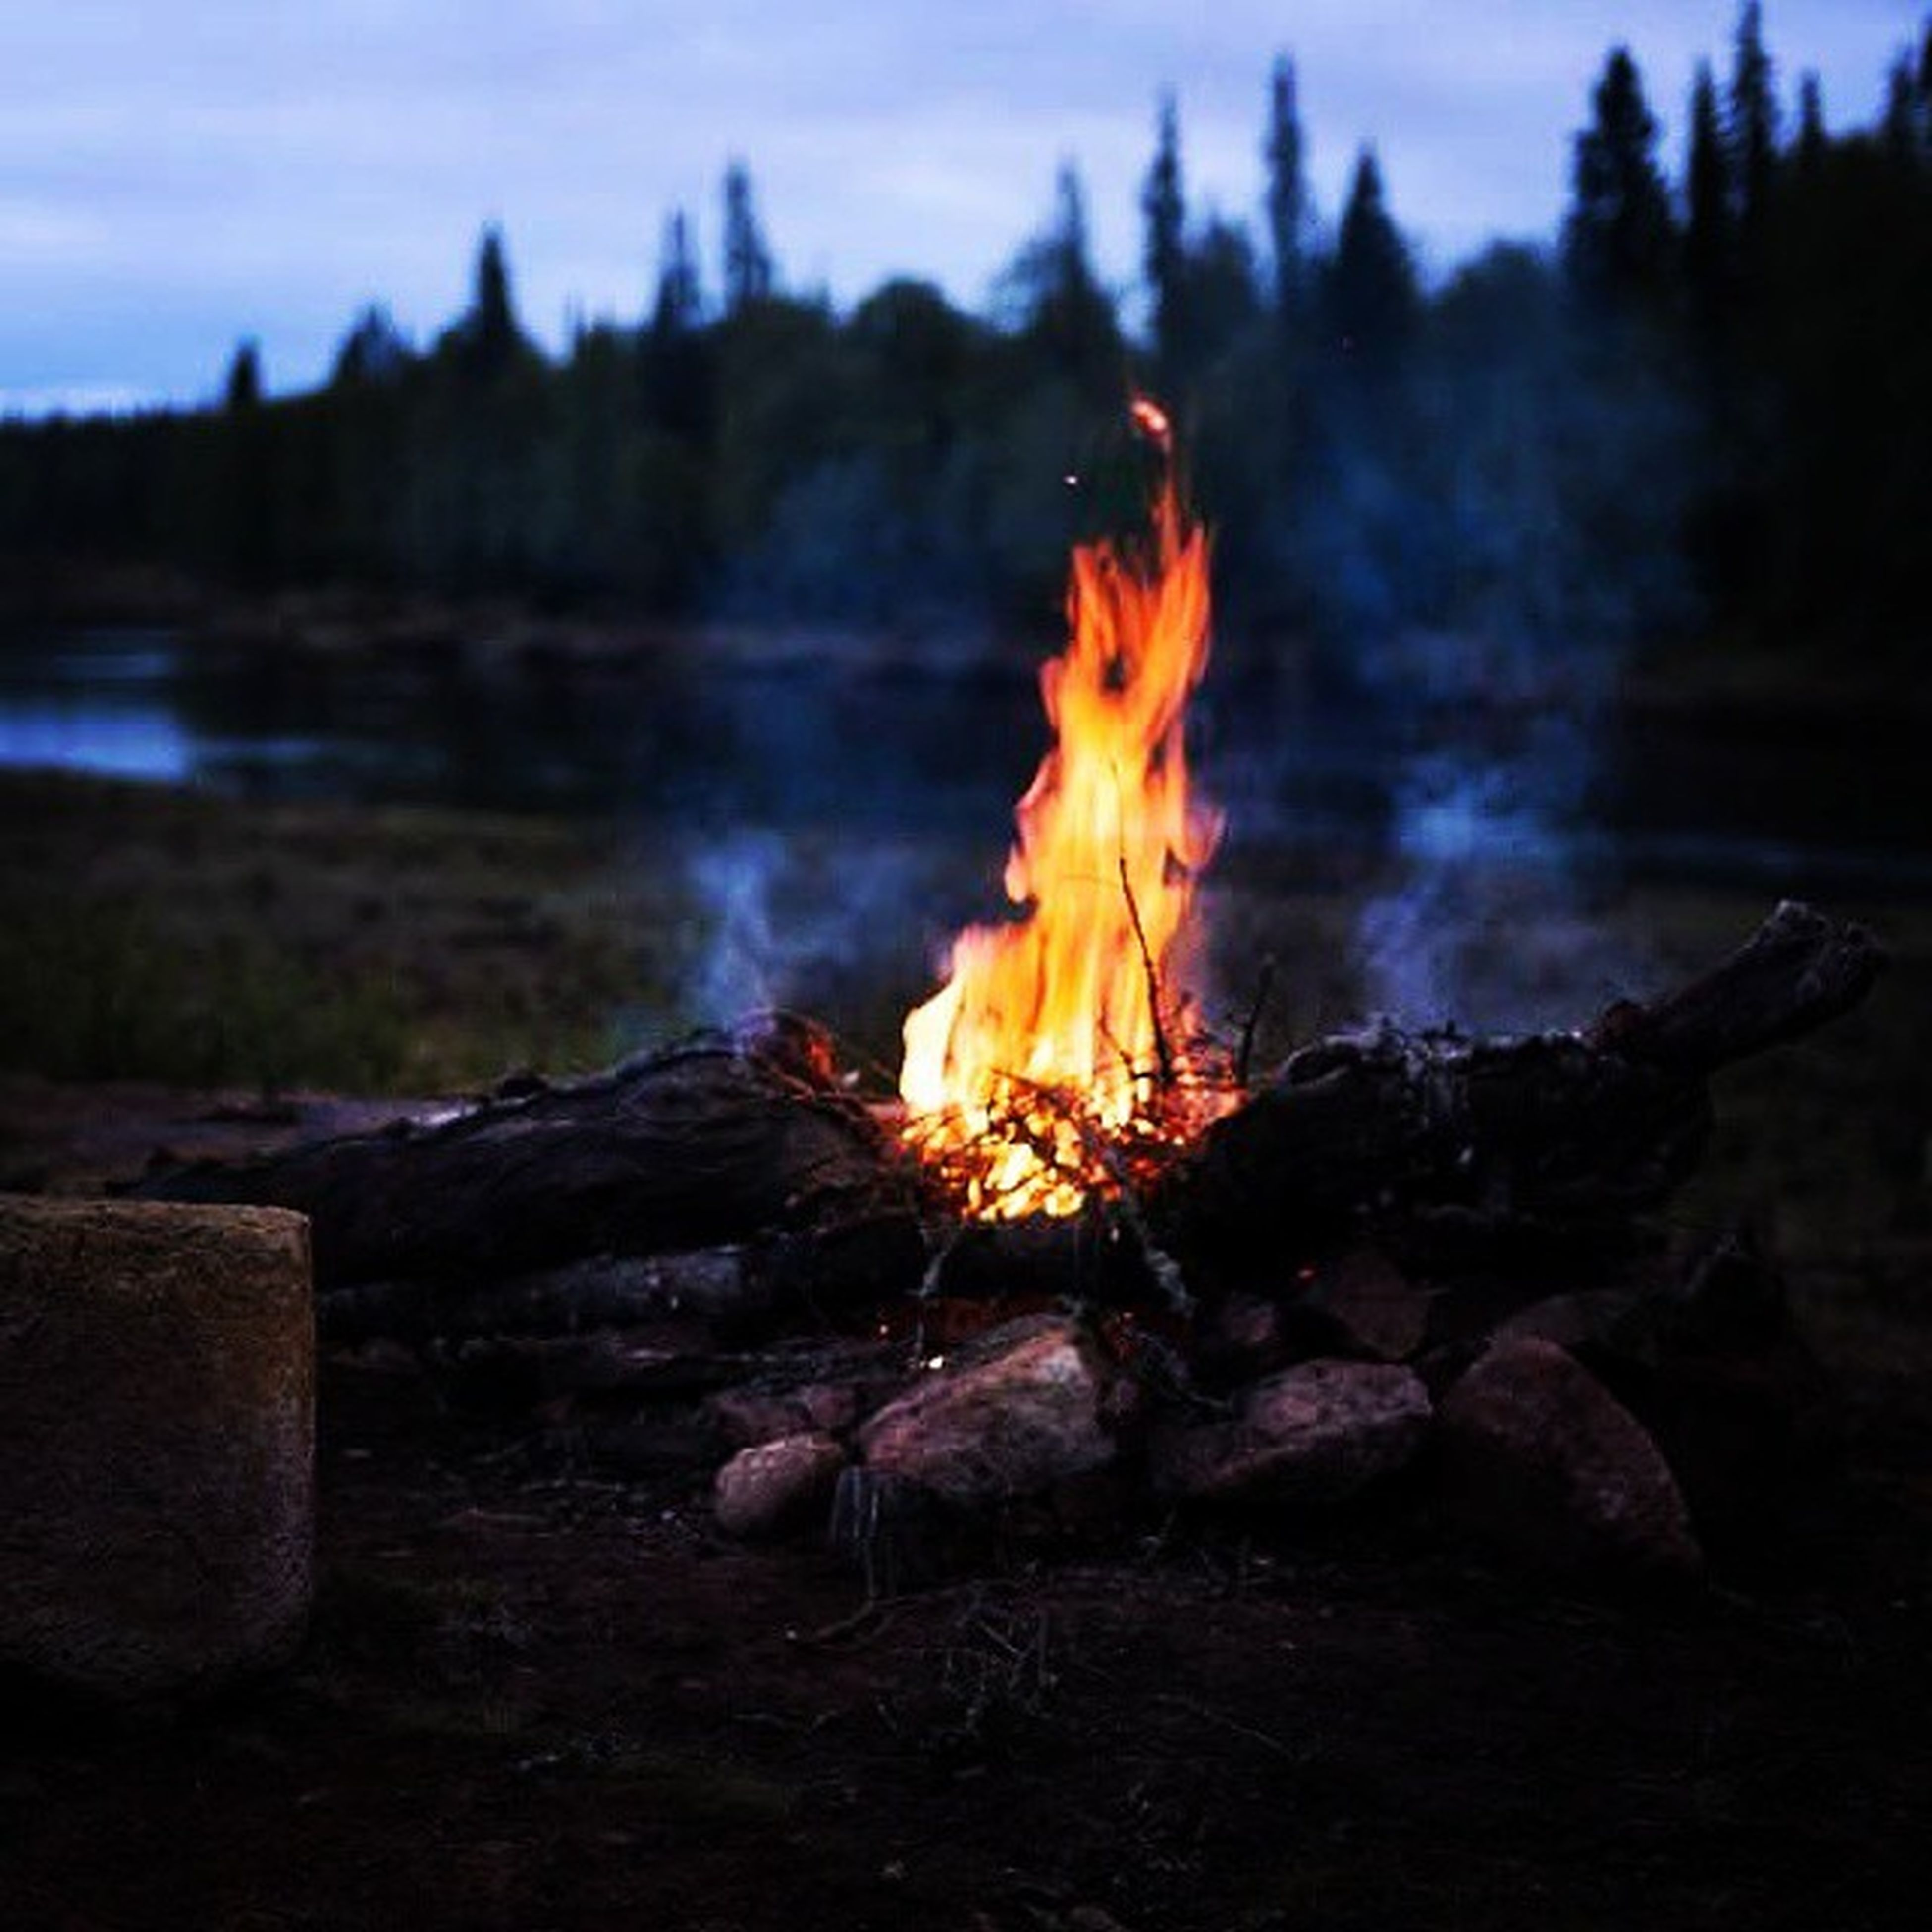 flame, burning, fire - natural phenomenon, heat - temperature, bonfire, fire, firewood, campfire, glowing, orange color, close-up, heat, sunset, focus on foreground, motion, outdoors, nature, no people, long exposure, log